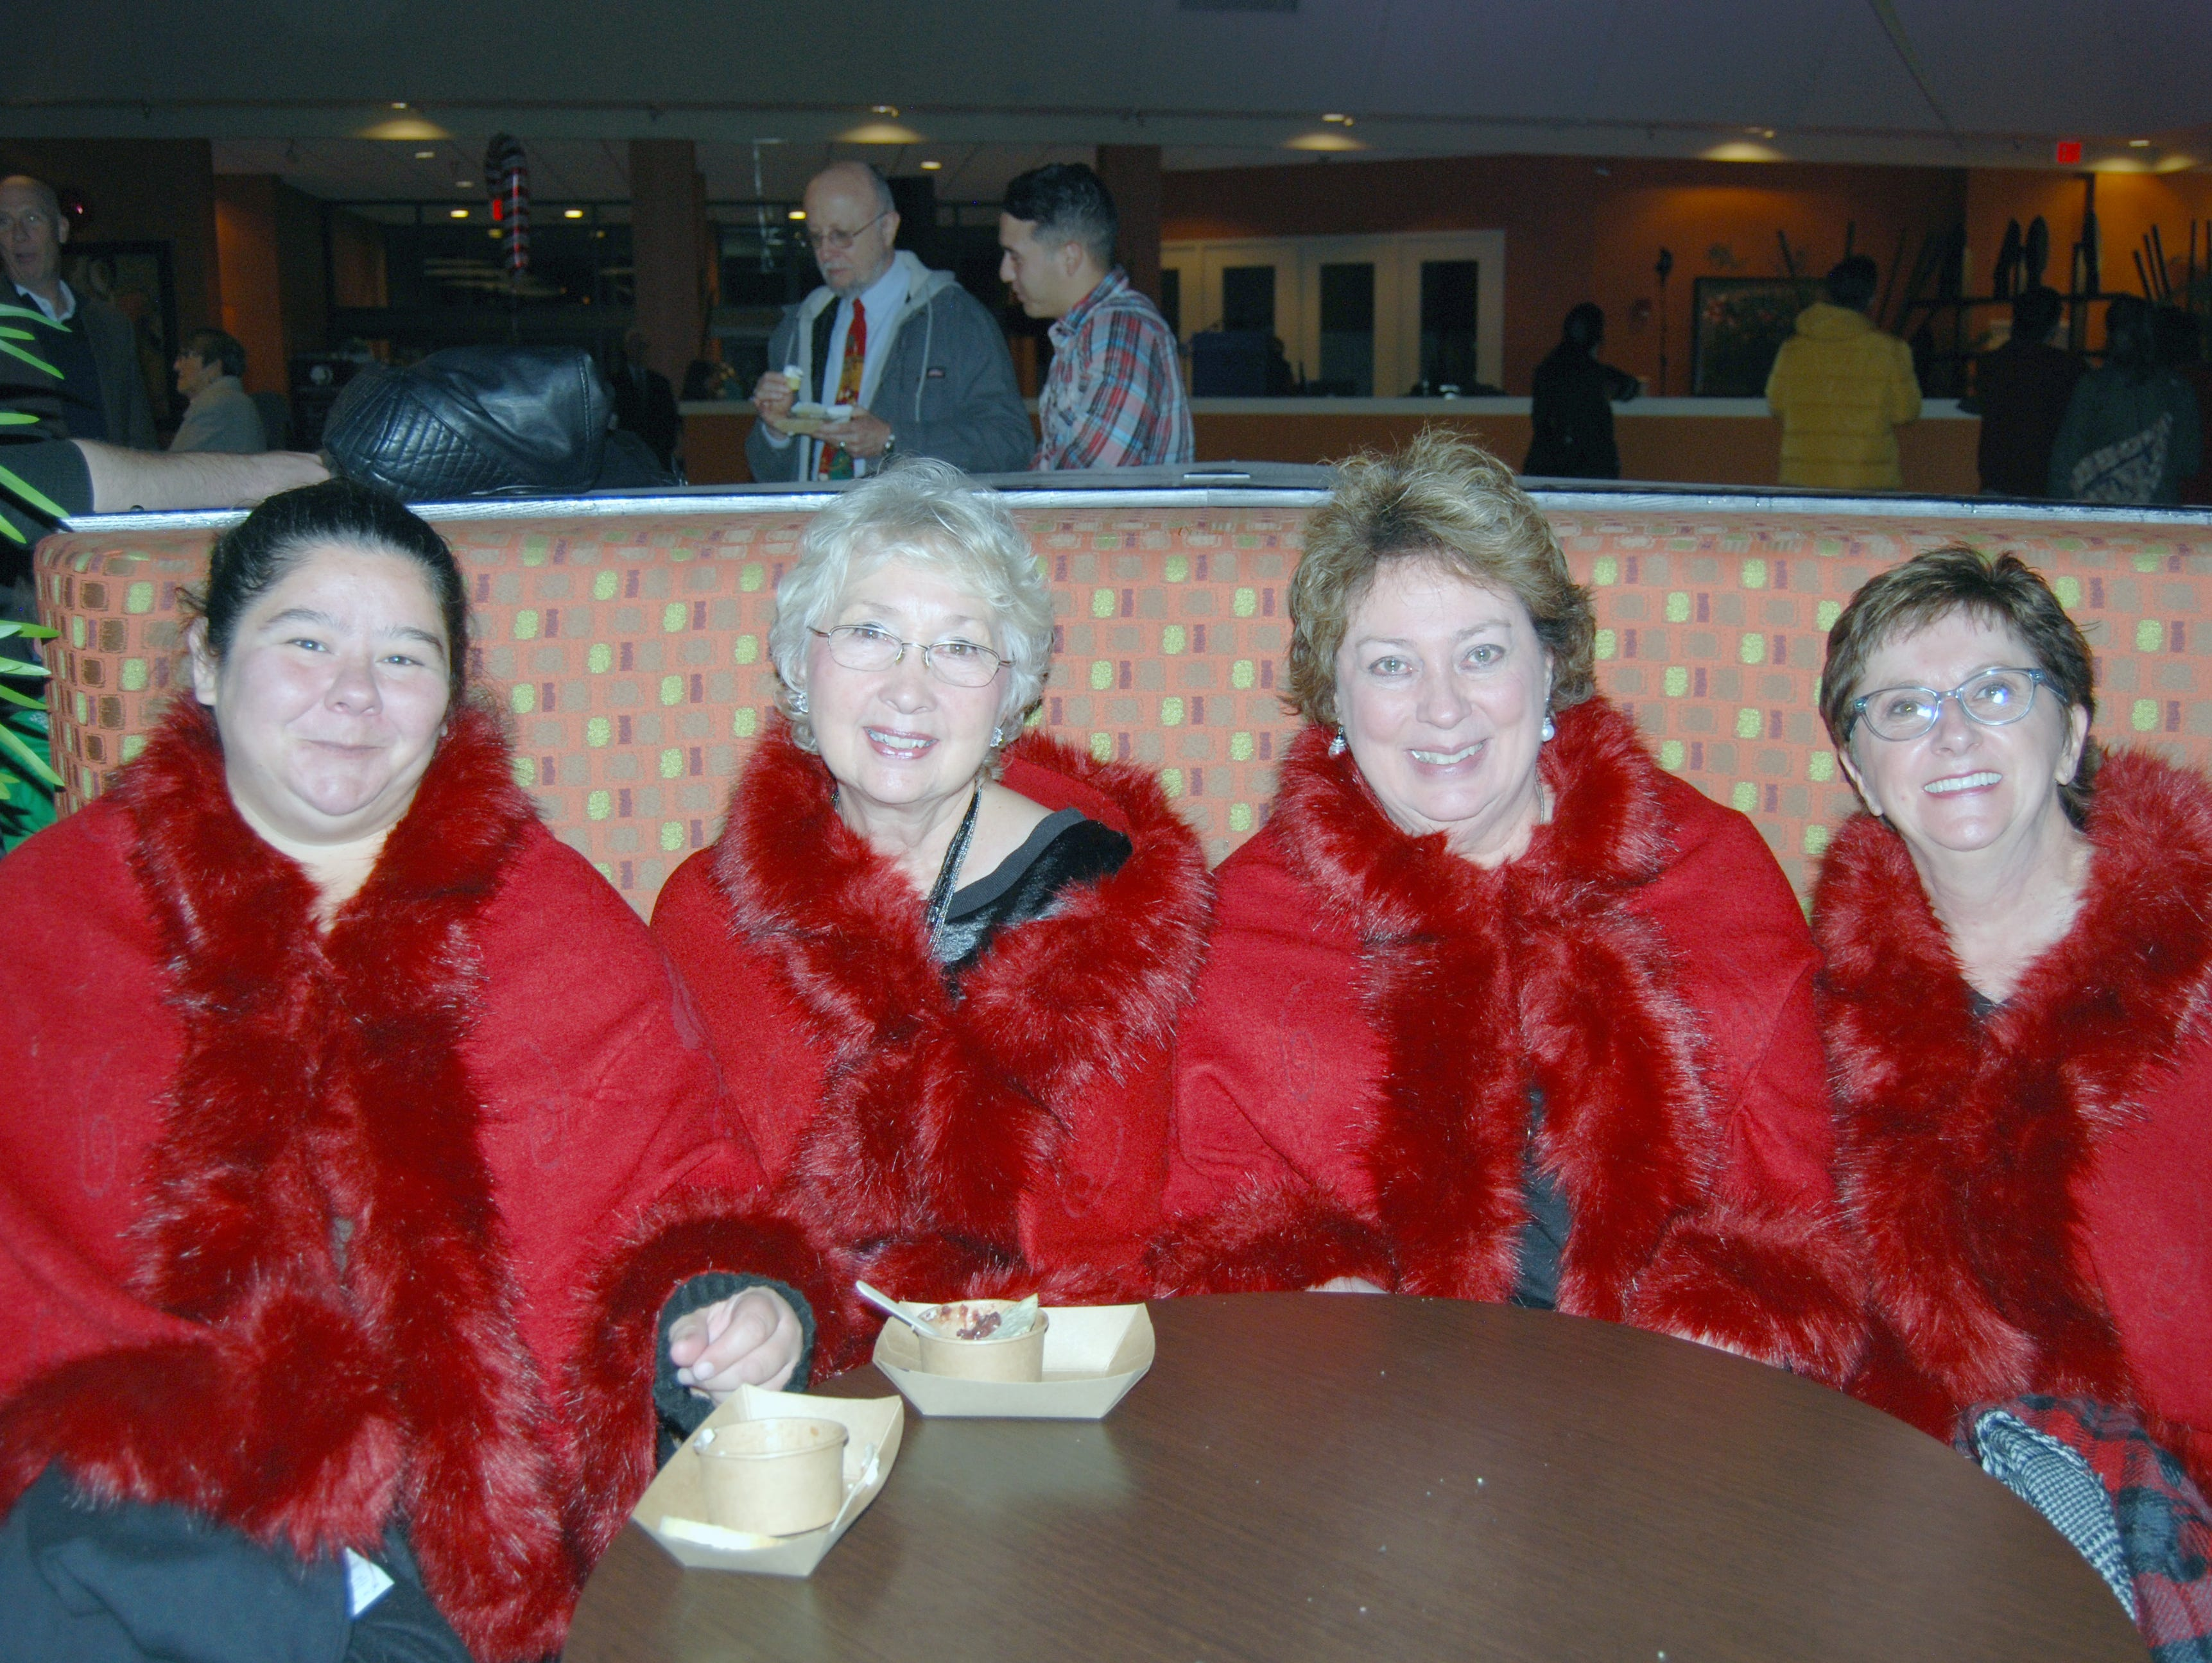 Louise Stanley, Julie Hakensmith, Cindy Griot and Regina Bohannan